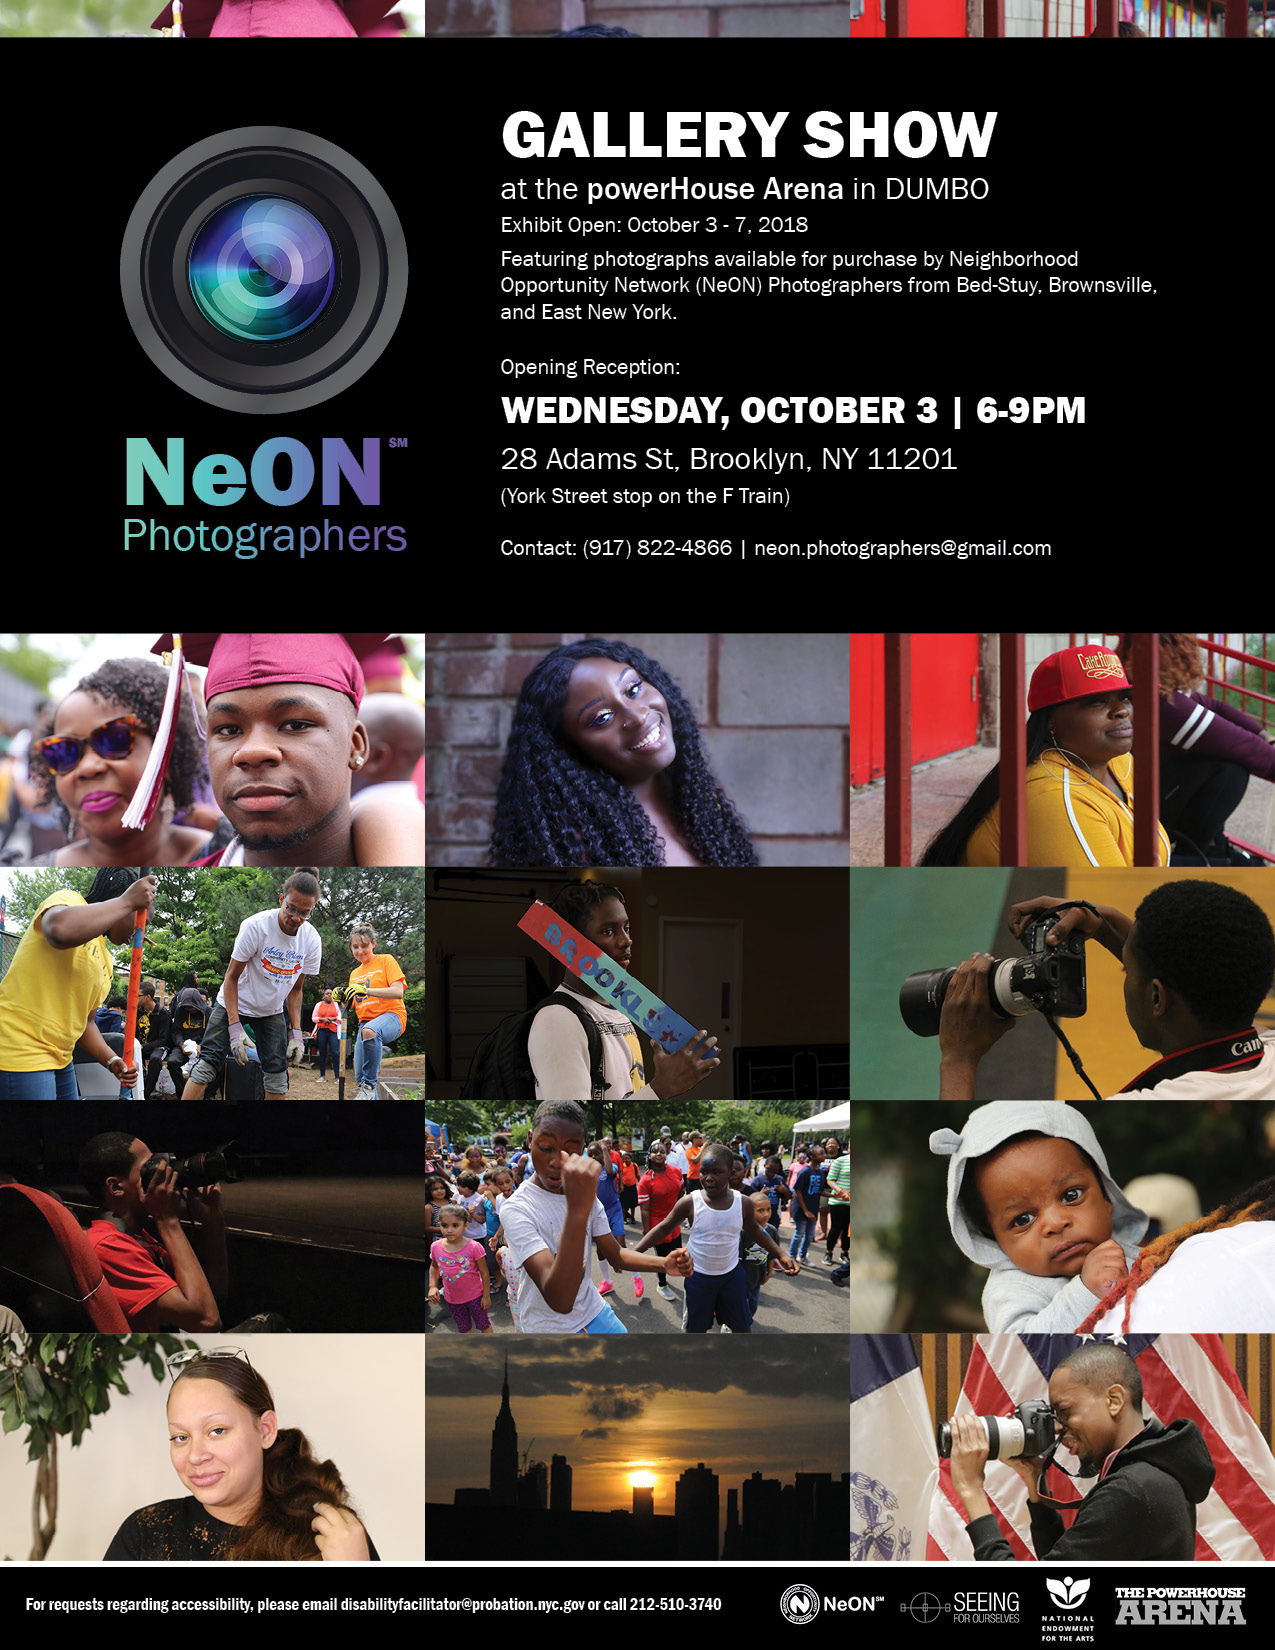 Opening Reception: The NeON Photographers Exhibit